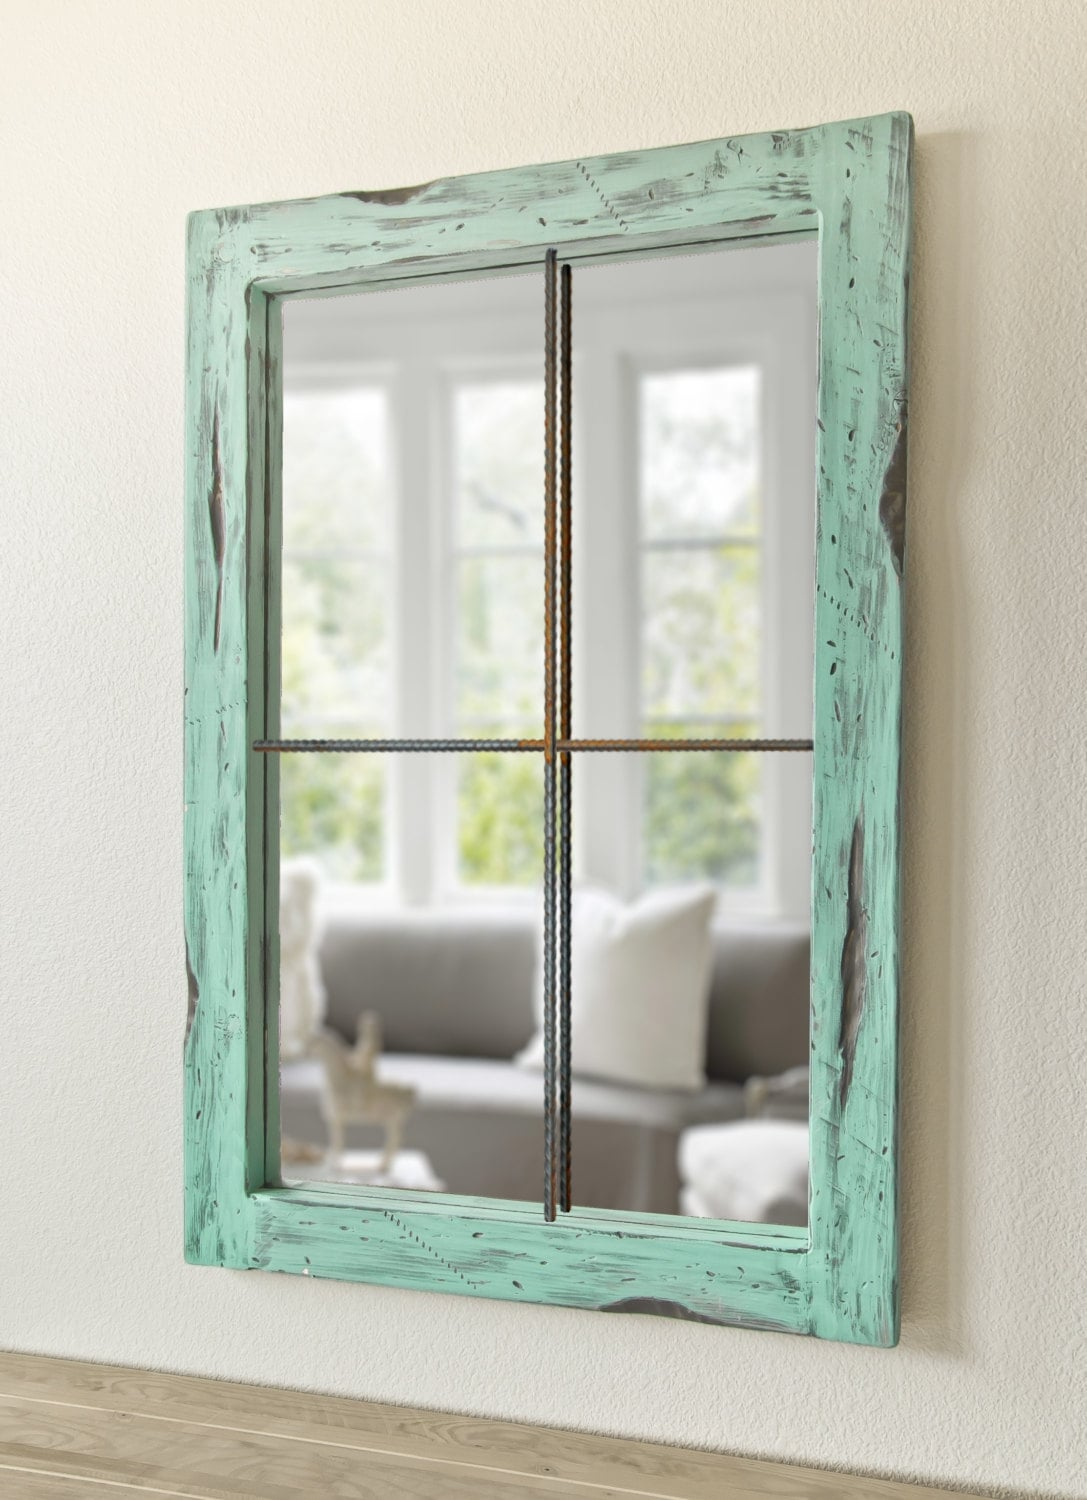 Rustic mirror distressed faux window vintage green zoom altavistaventures Images